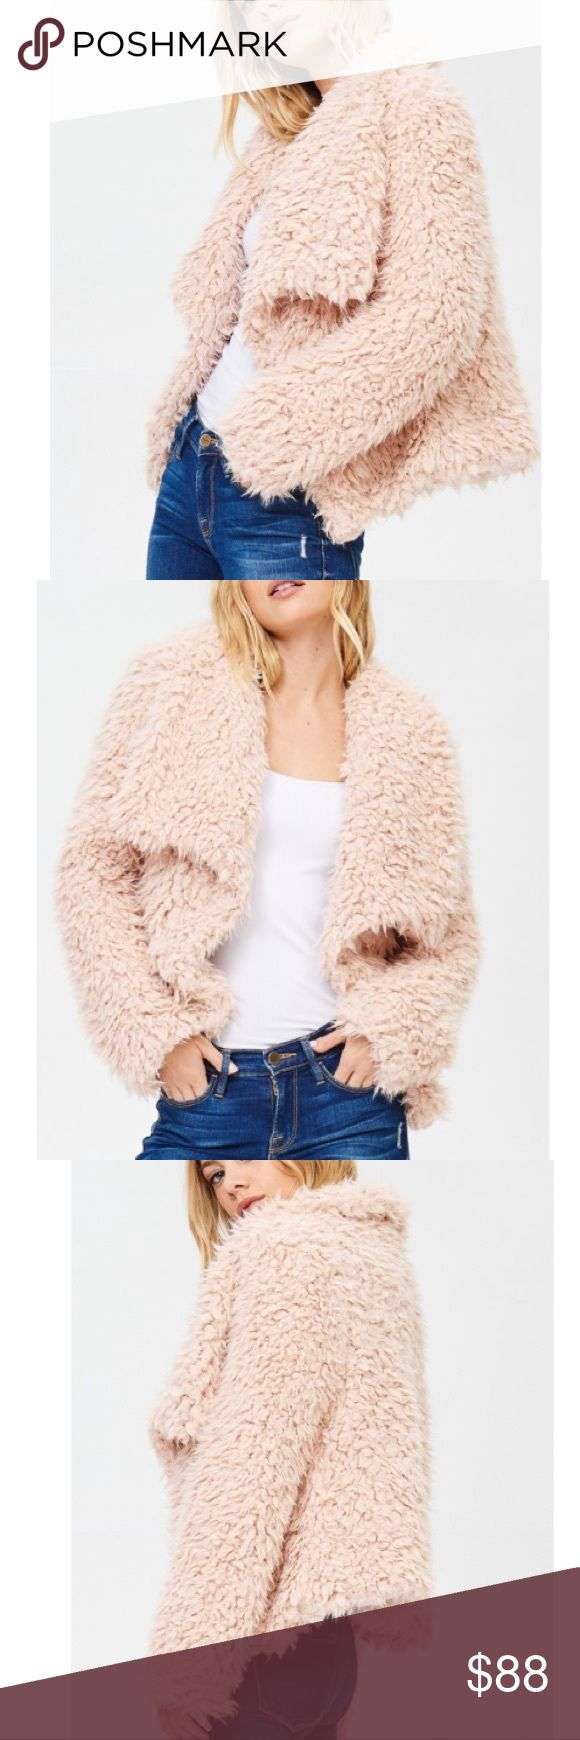 🆕Harmony Blush Pink Faux Fur Shaggy Teddy Jacket New Boutique Item. The Harmony Coat features a soft cozy faux fur material, gorgeous exaggerated collar, and pockets. Perfect jacket to dress up and dress down! Great faux Fur Jacket for New Years Eve! Color(s): Blush Pink Material: 100% Polyester  Imported Jackets & Coats